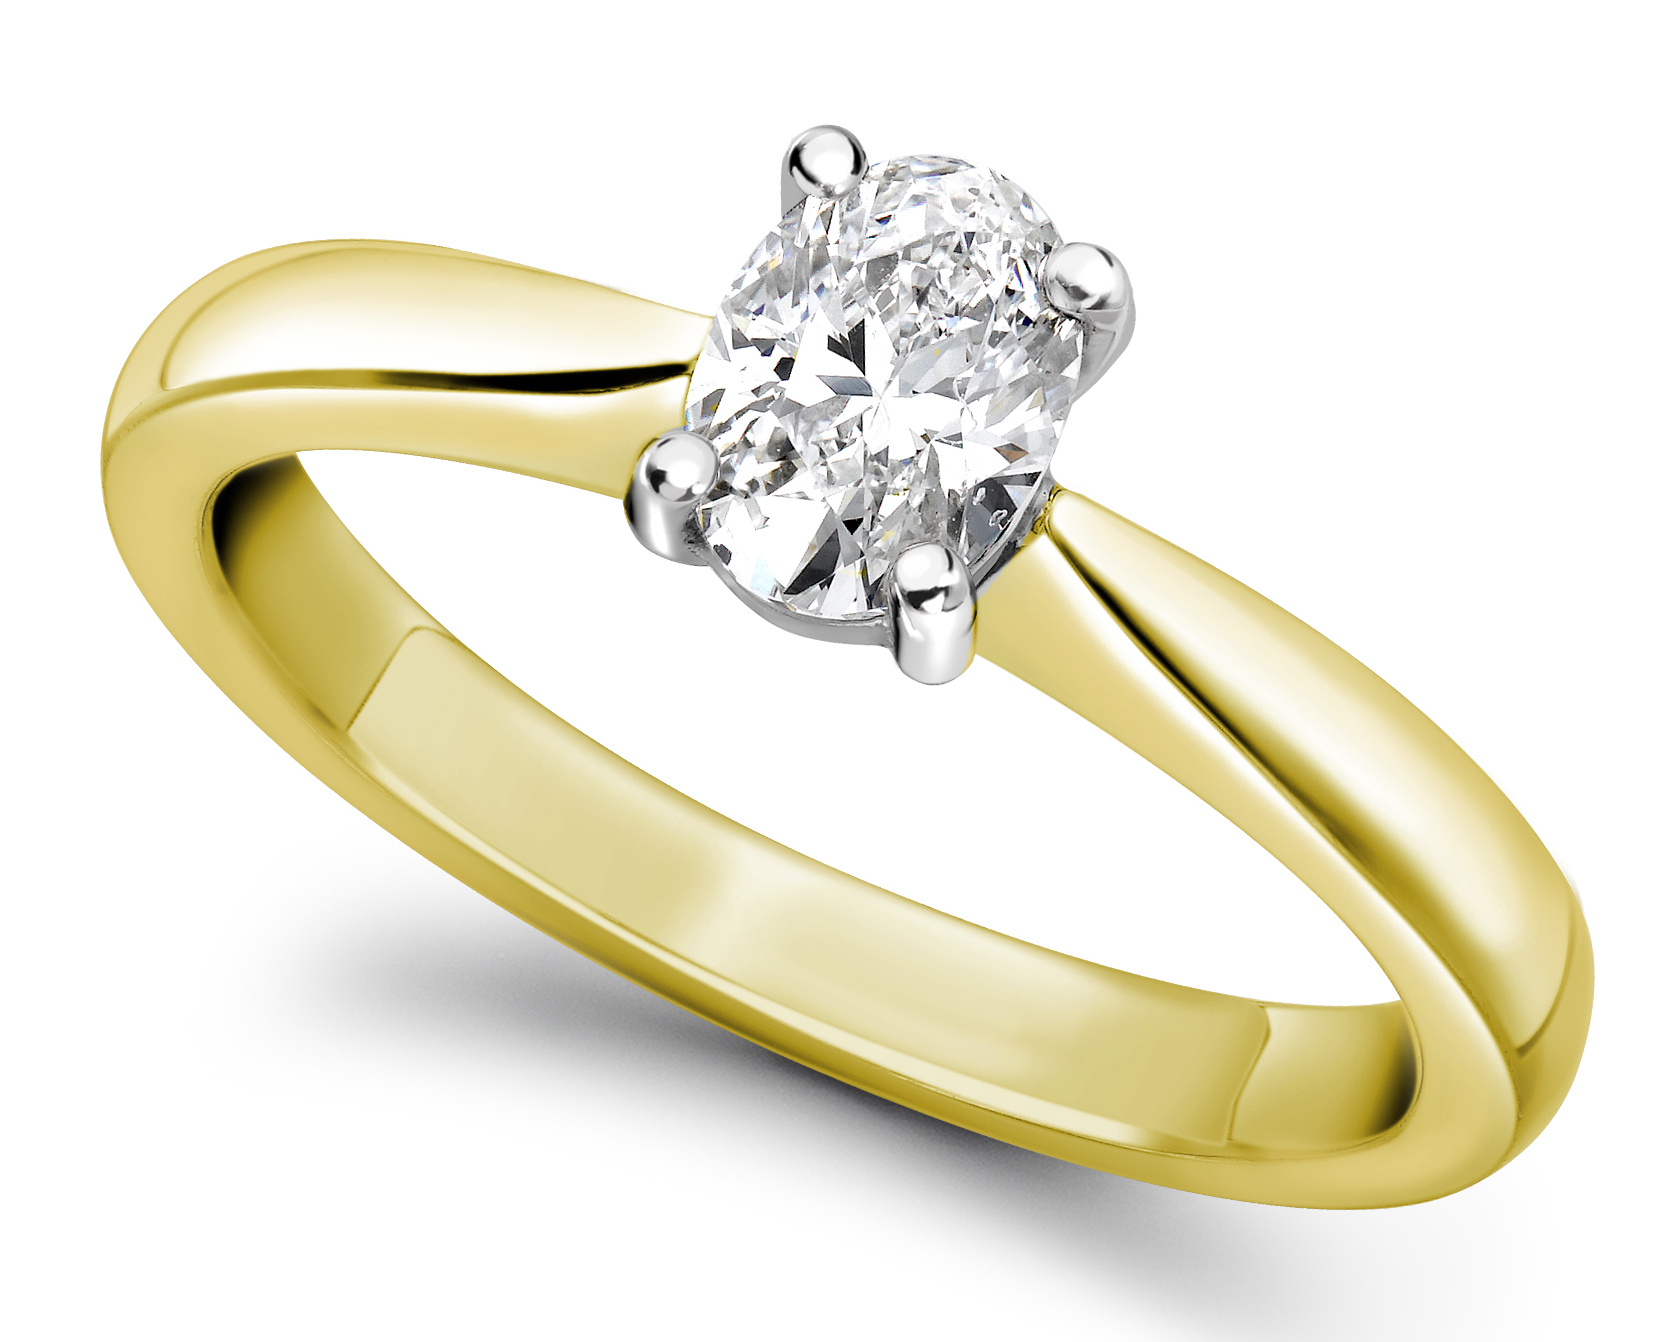 Oval Yellow Gold Diamond Engagement Ring GRC575YG   Main Image